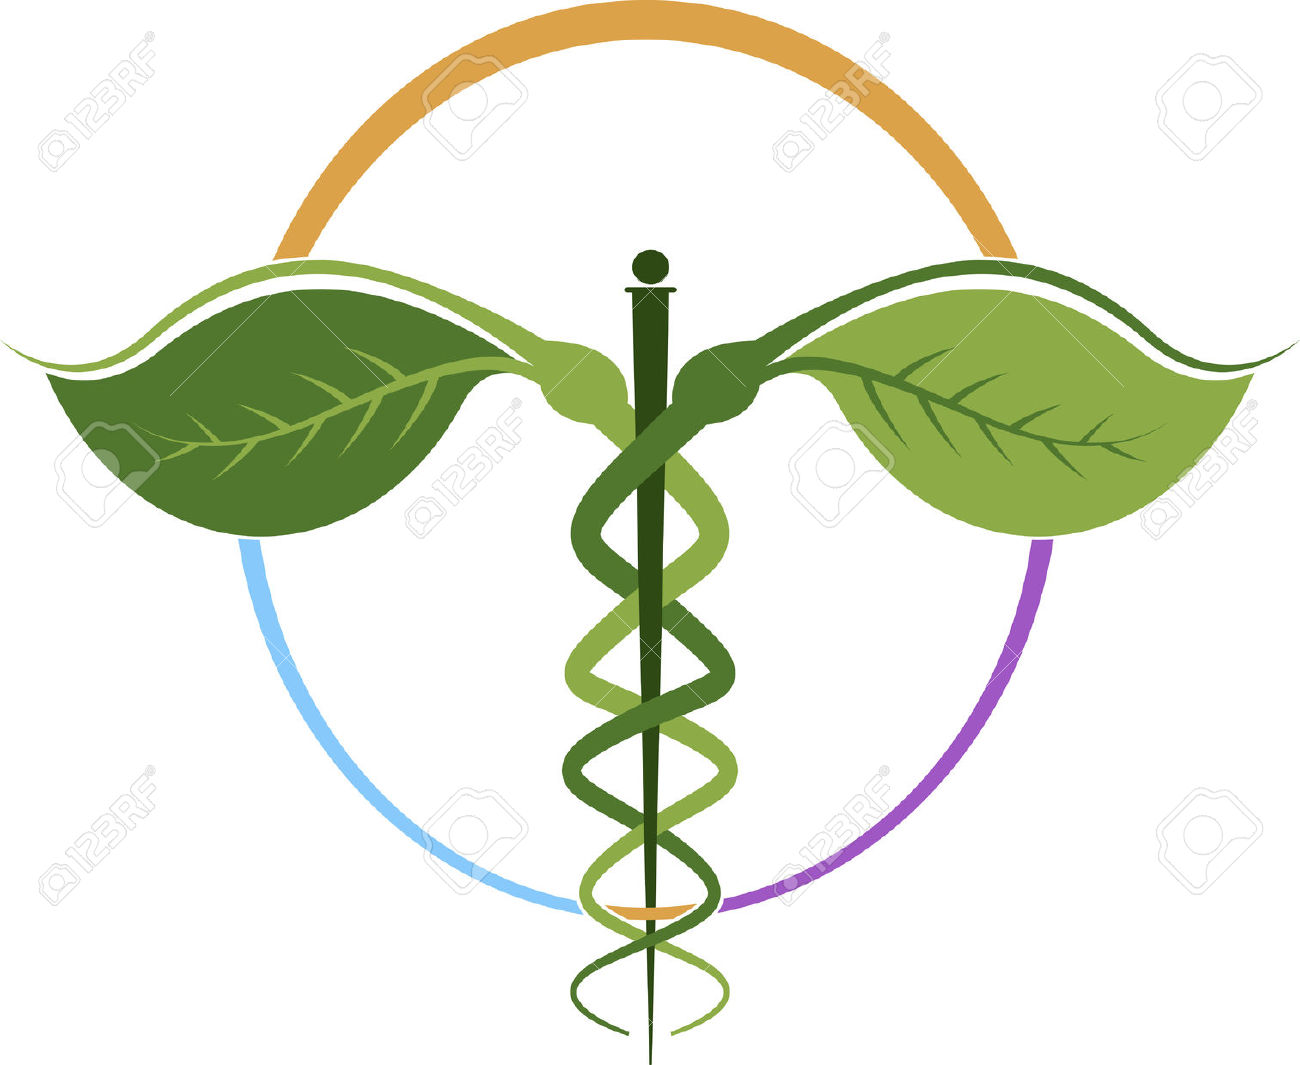 Illustration Art Of A Herbal Caduceus With Isolated Background.